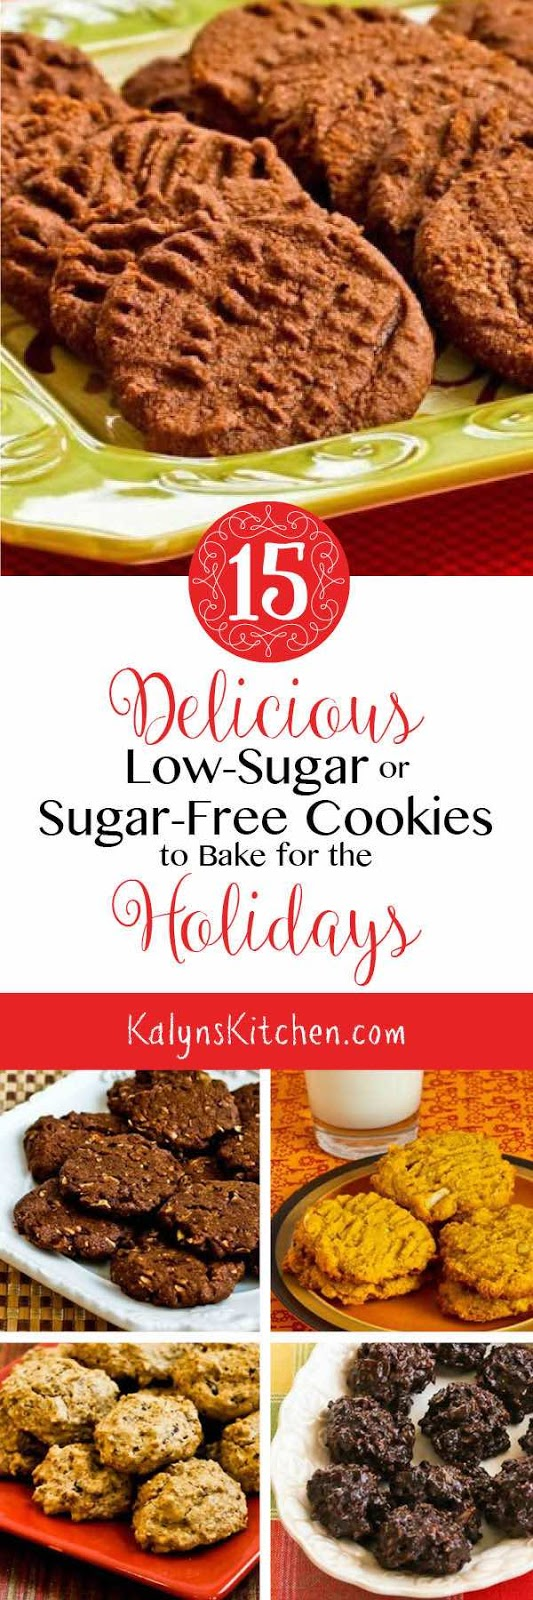 15 Delicious Low-Sugar or Sugar-Free Cookies to Bake for the Holidays ...